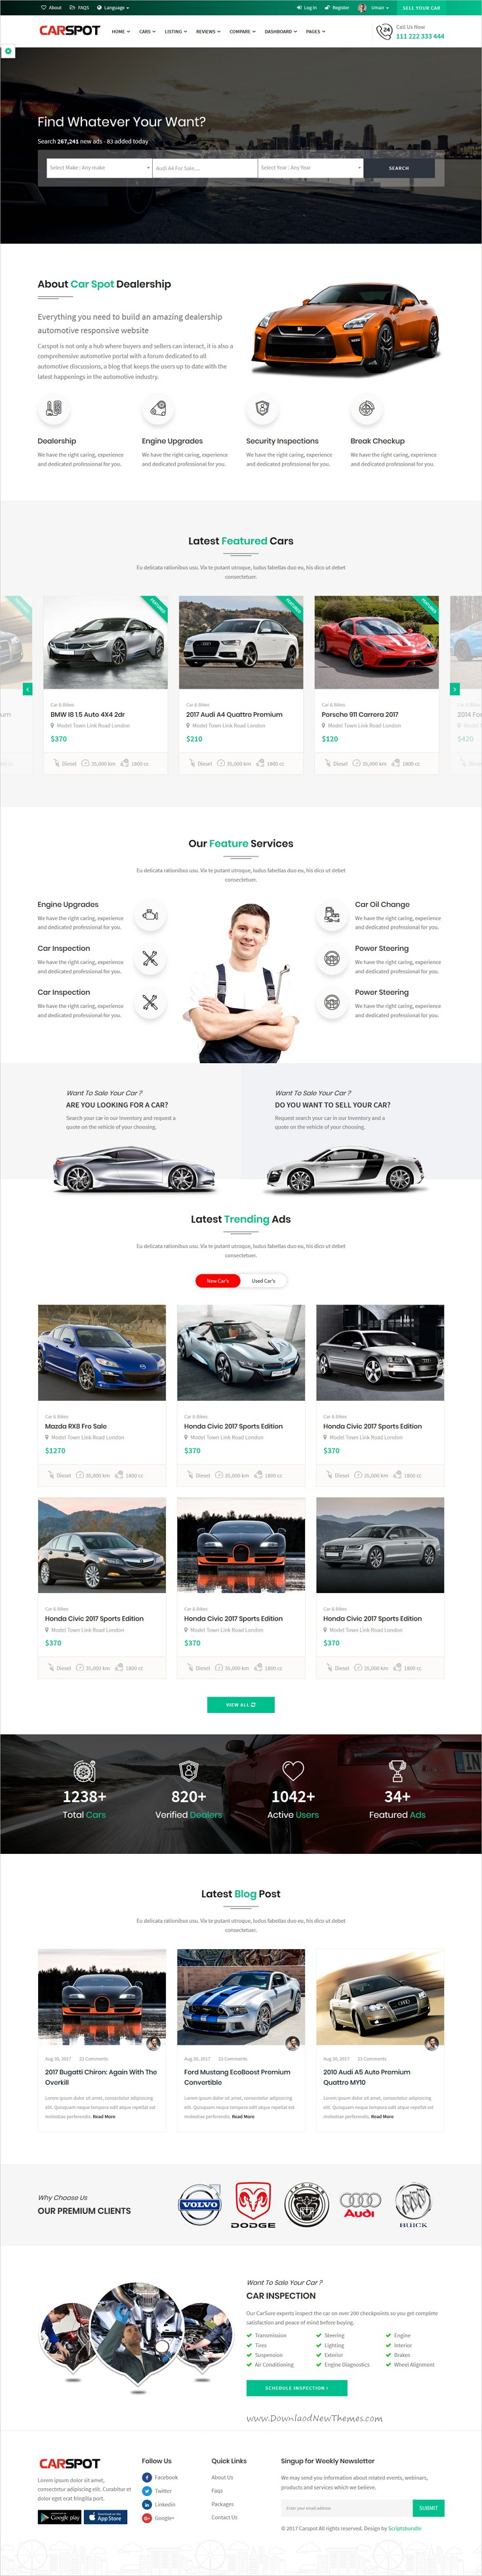 Modern Classified  Ad Listing  Car Services  Inventory